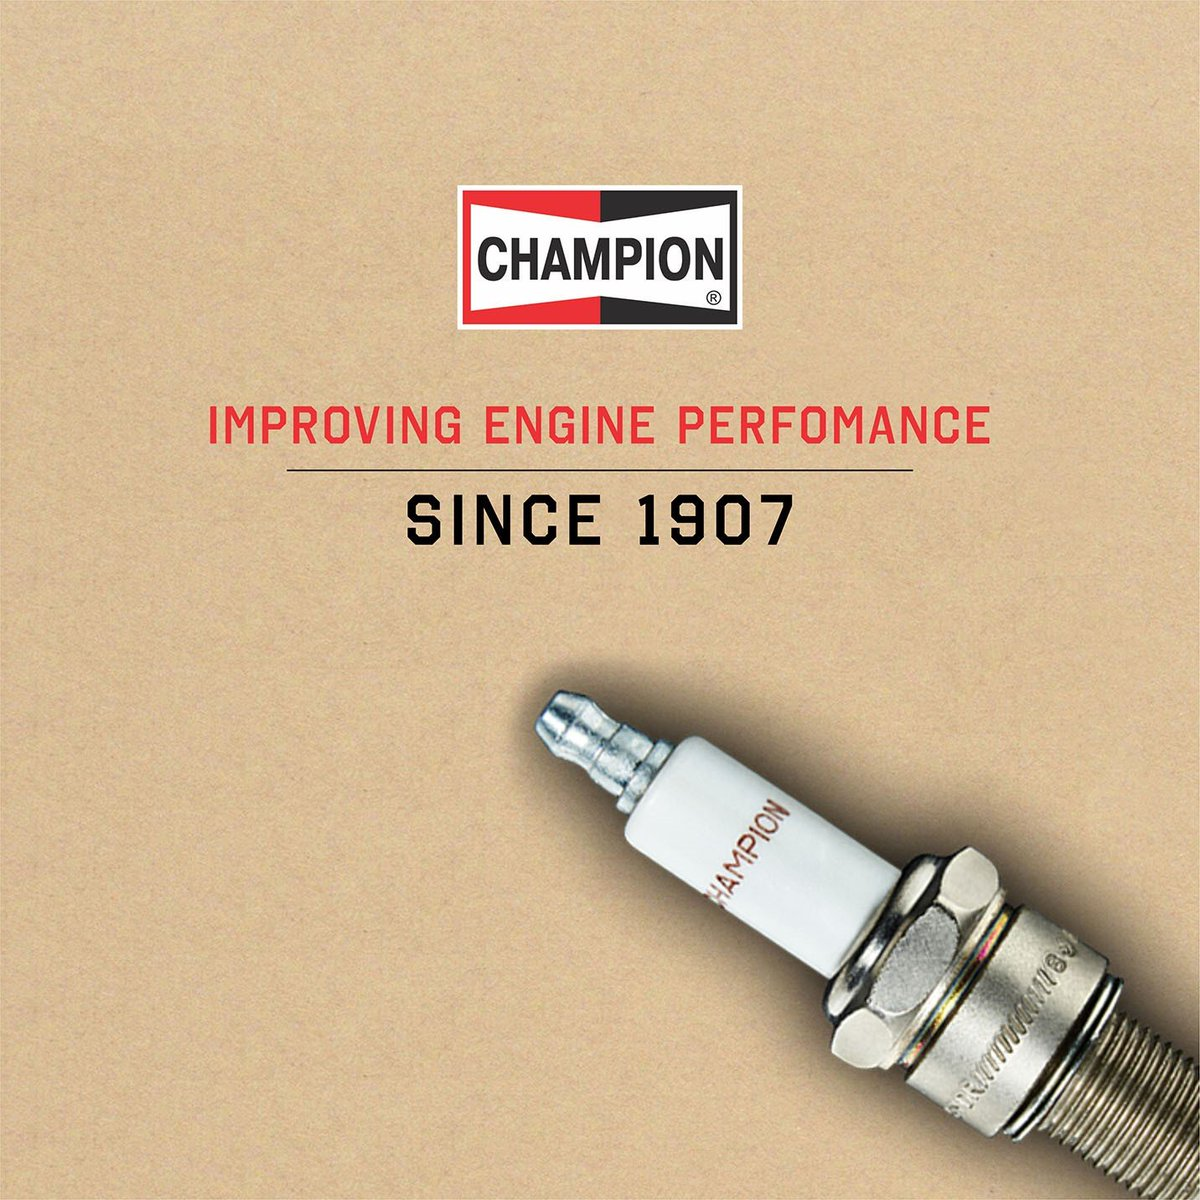 Improving engine performance since 1907. Follow us to stay updated #Champion https://t.co/pRKnuV5IX2